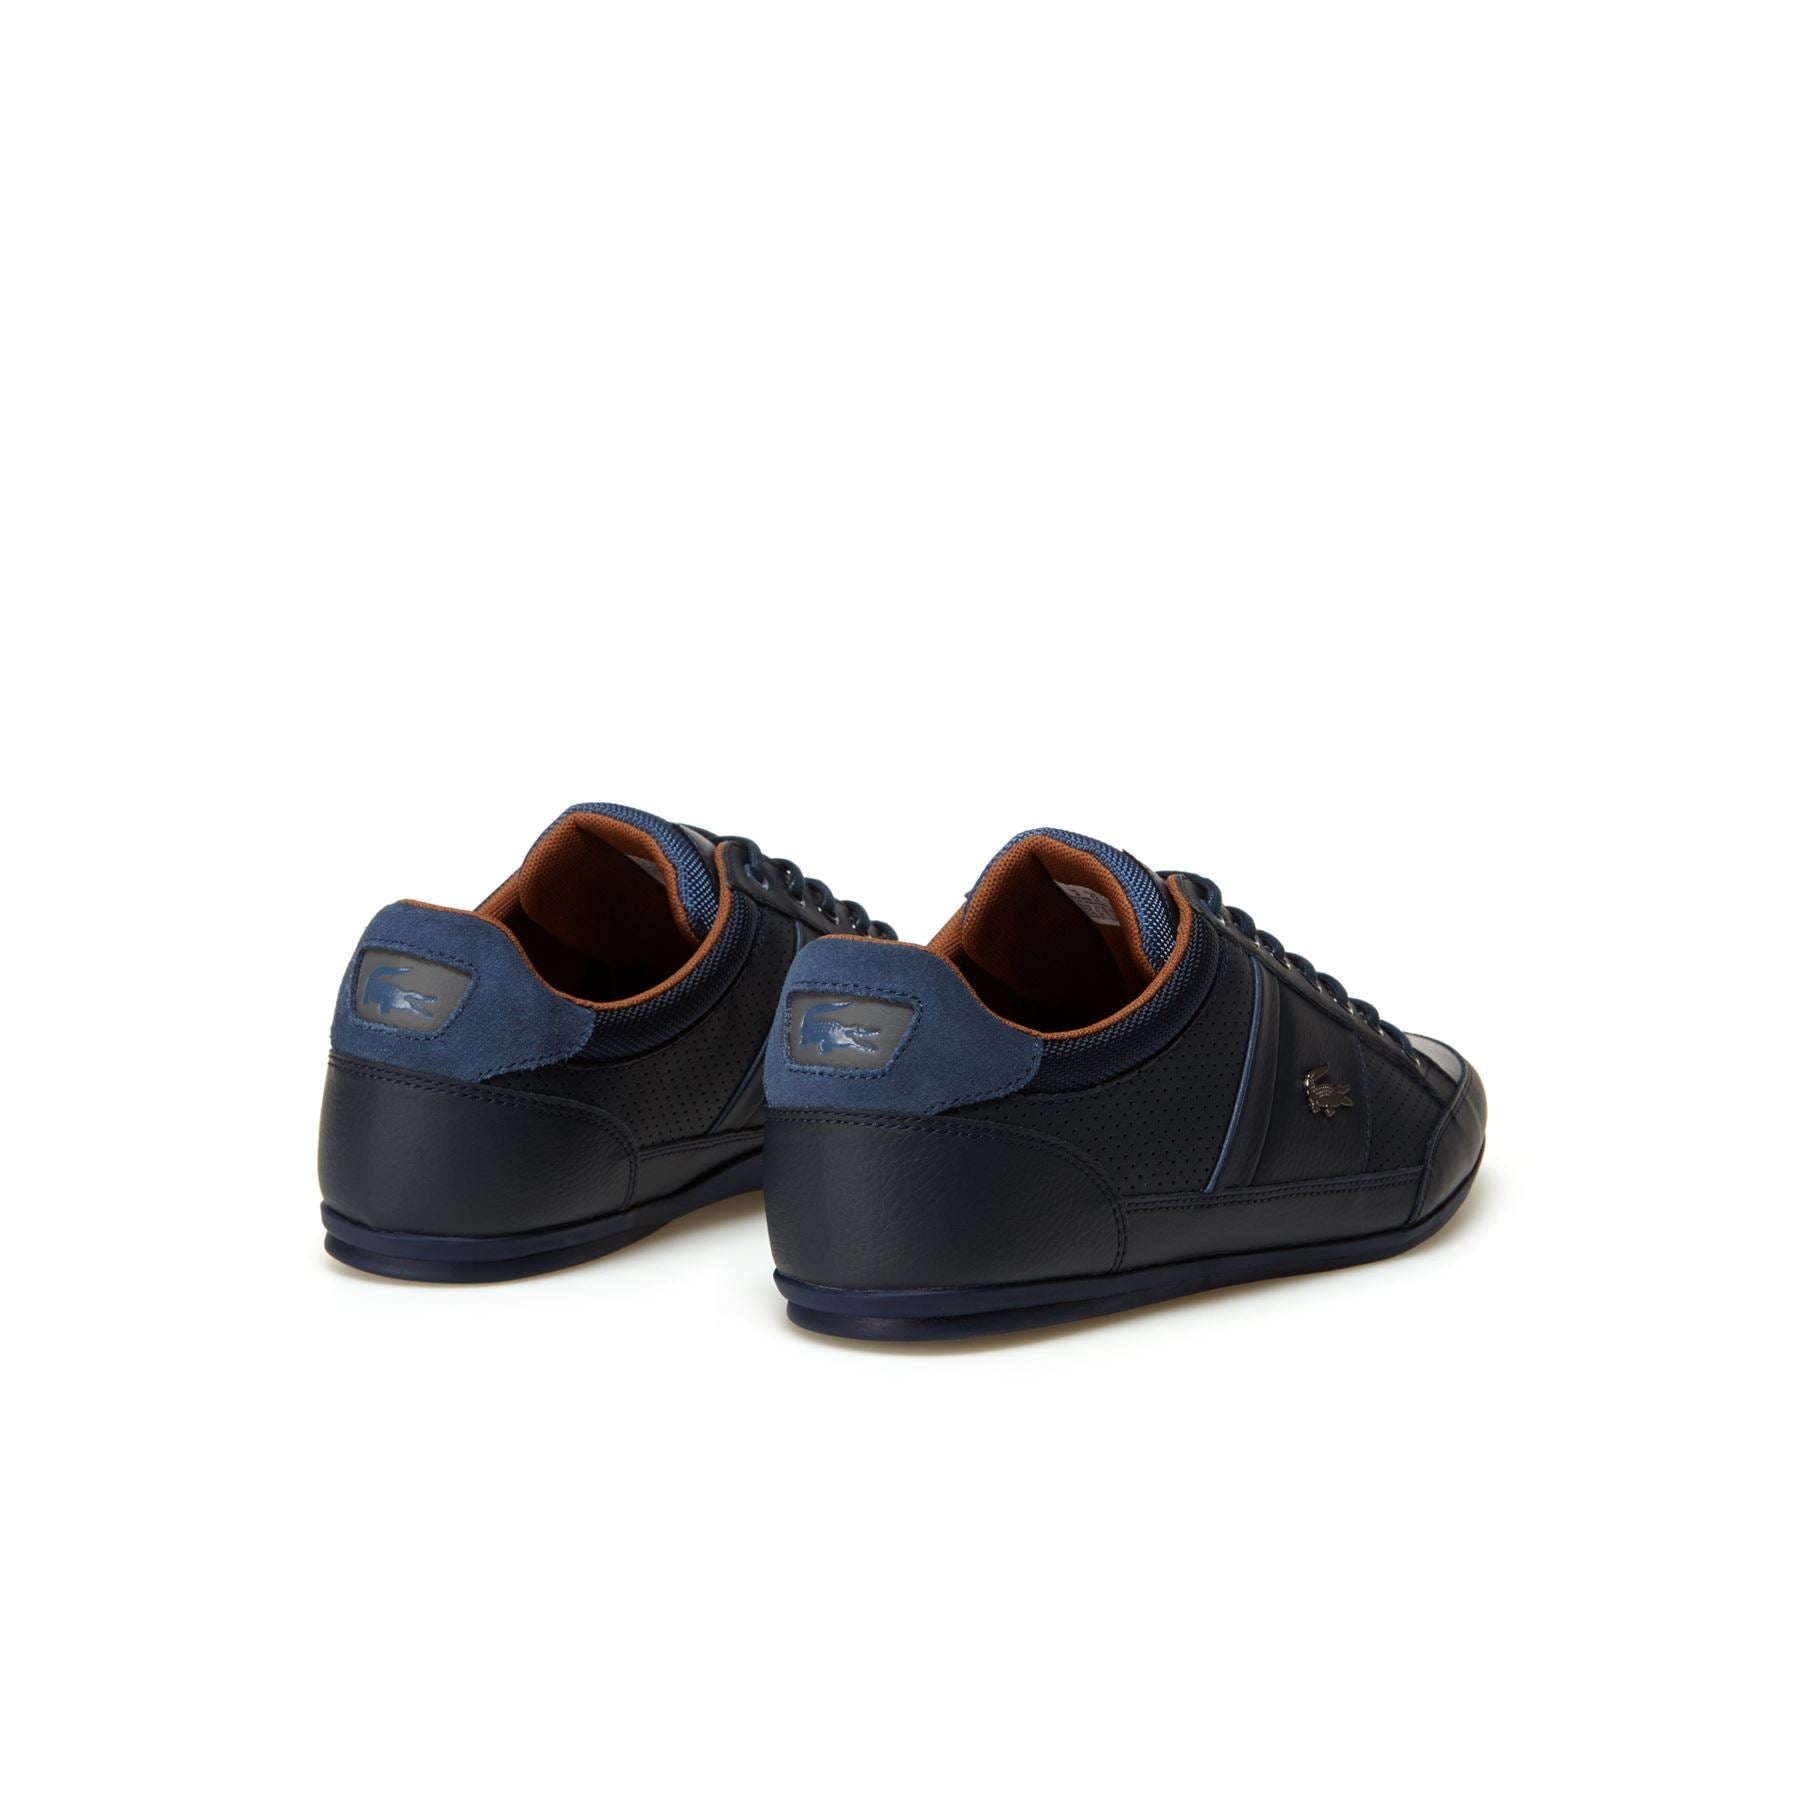 LACOSTE CHAYMON LEATHER TRAINERS NAVY/TAN